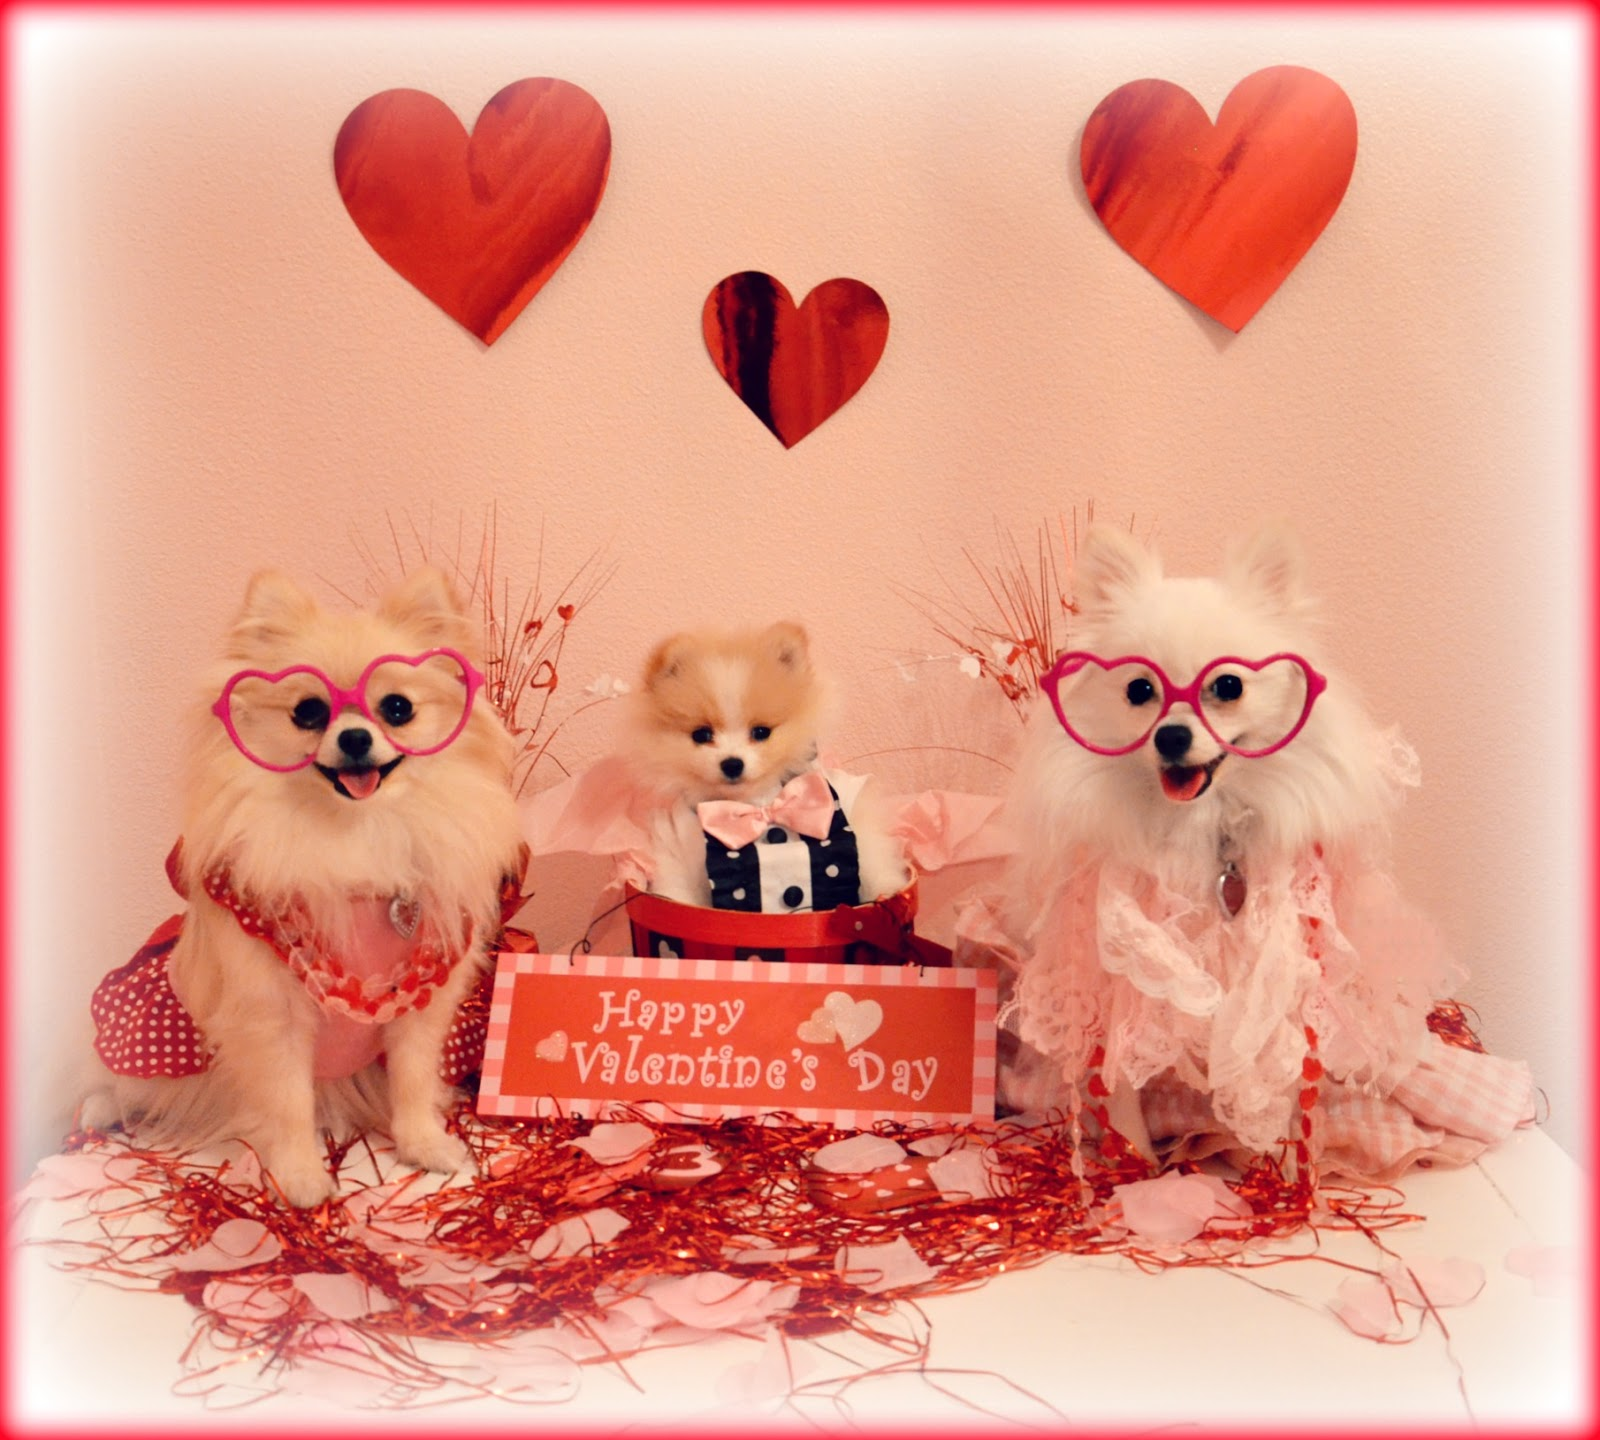 Happy Valentineu0027s Day. Hope Everyone Has A Happy Holiday Filled With Lots  Of Love.